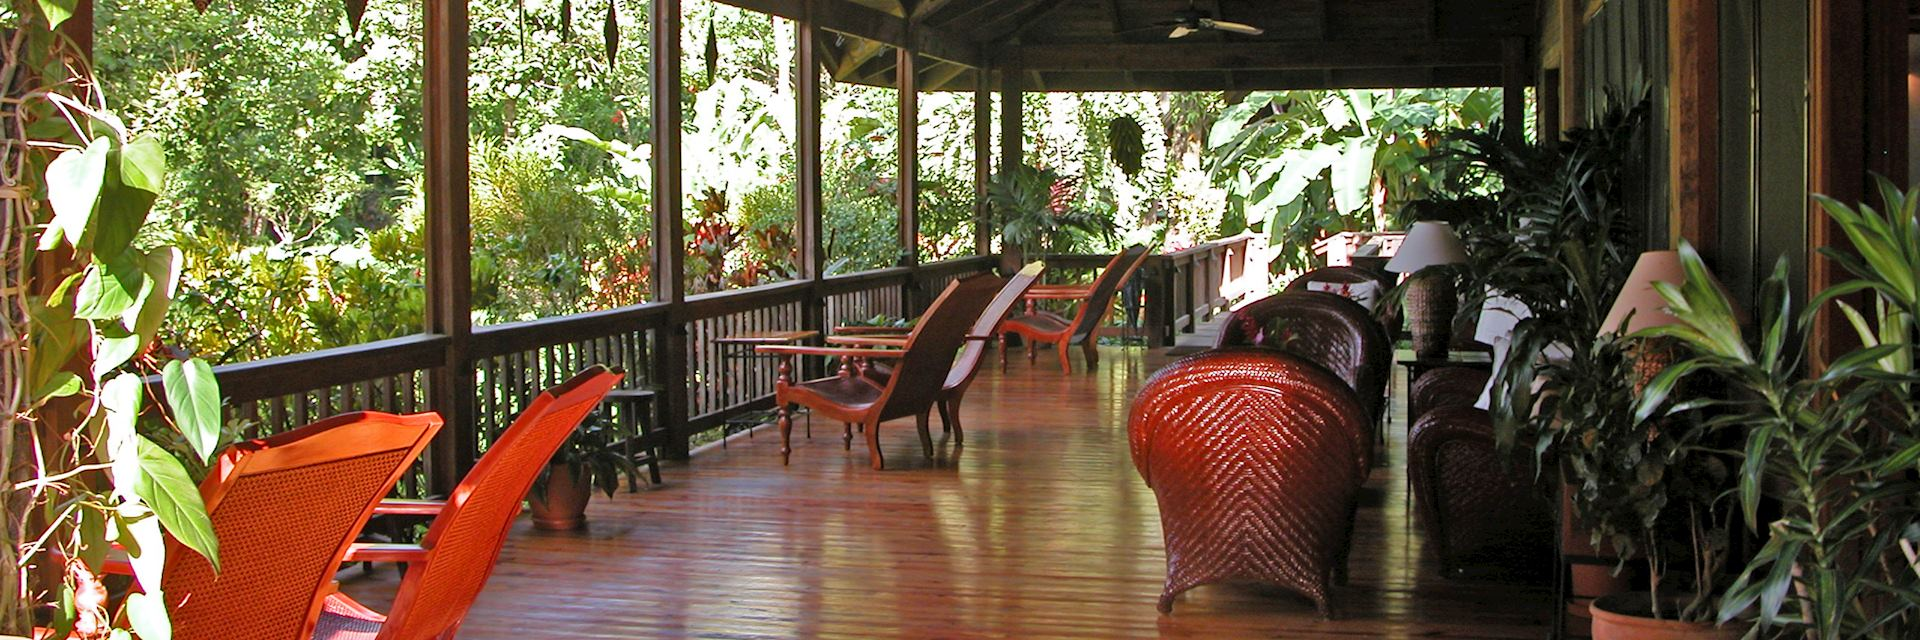 The Lodge at Pico Bonito, La Ceiba